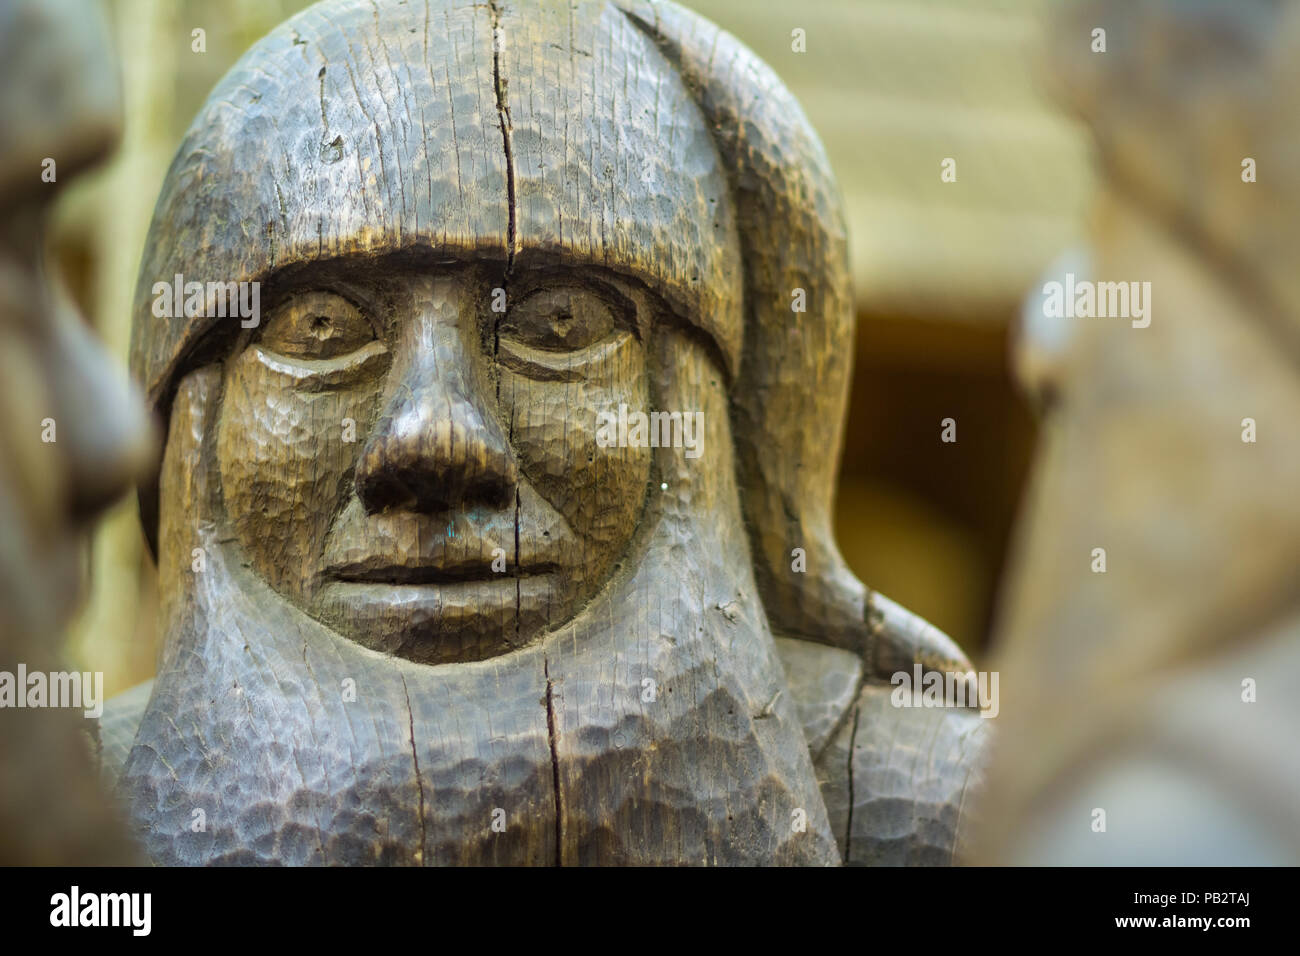 Wooden Dwarf Stock Photo